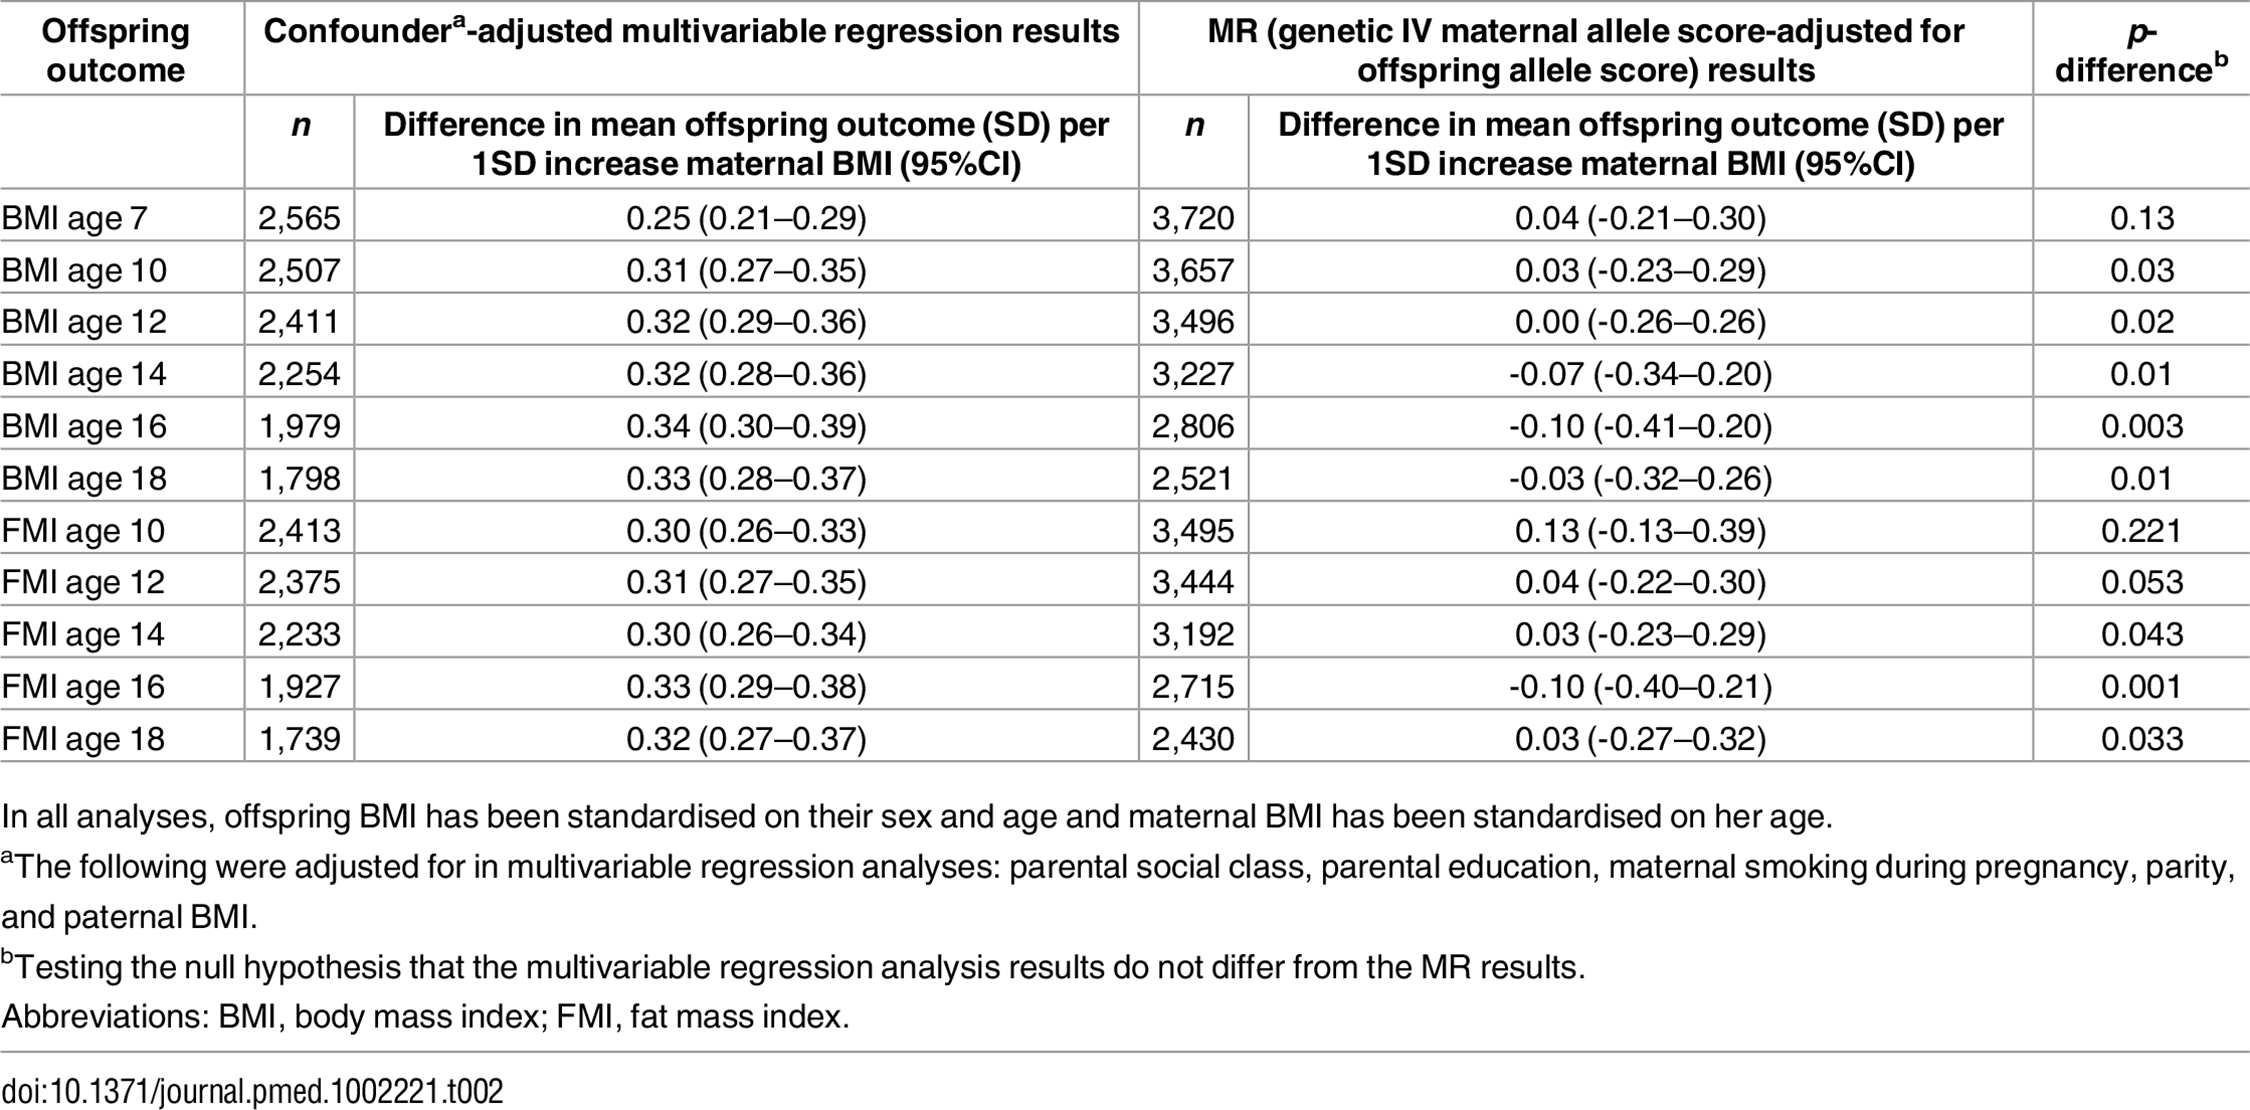 Confounder-adjusted multivariable and genetic IV (MR) associations of maternal pregnancy BMI with offspring BMI and FMI from ages 7 to 18 in ALSPAC (Discovery sample).